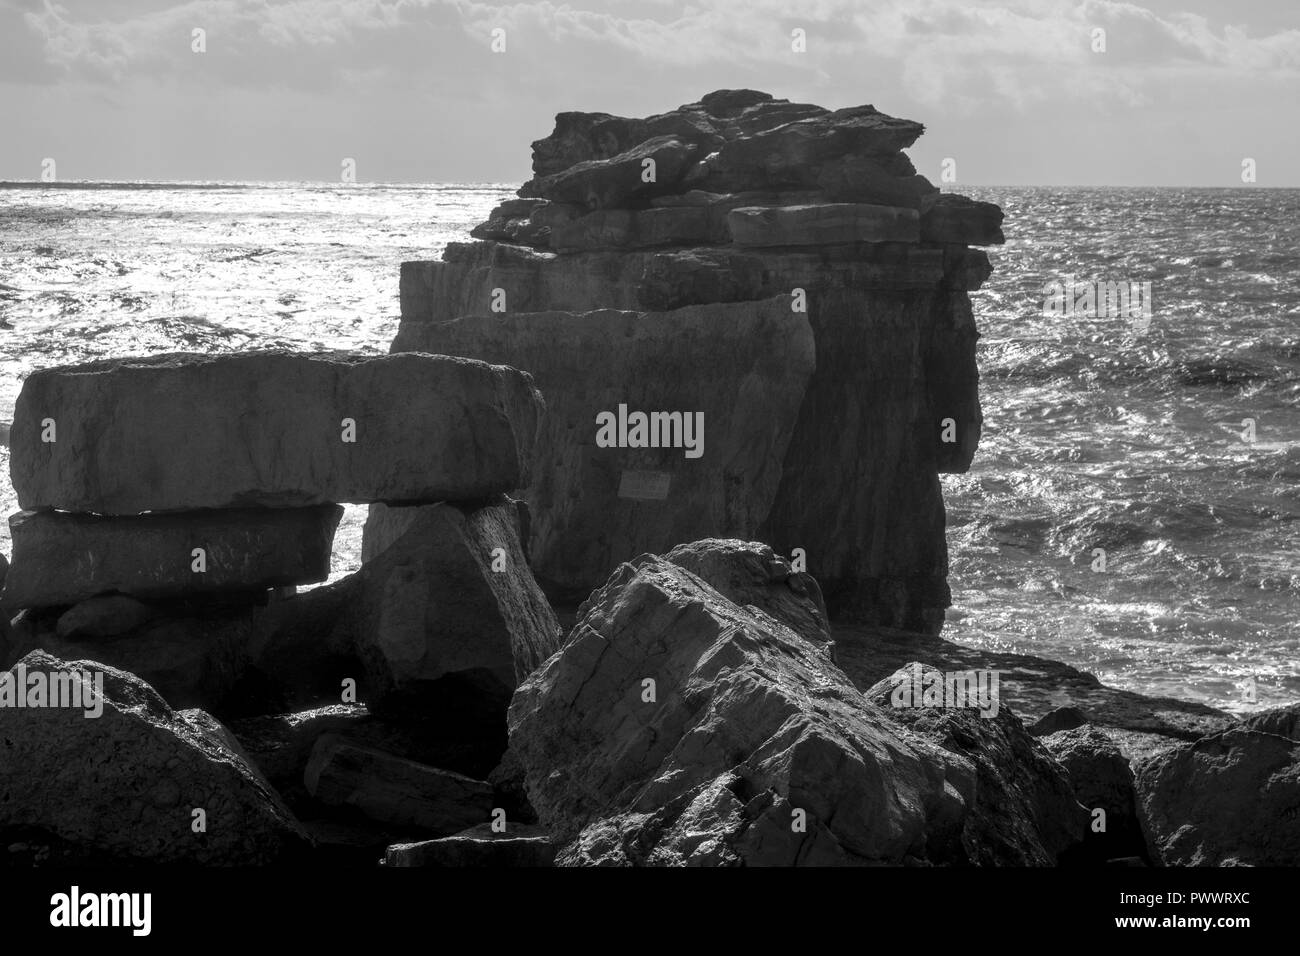 Pultpit  rock and  trinity monument Dorset  Portland bill Stock Photo